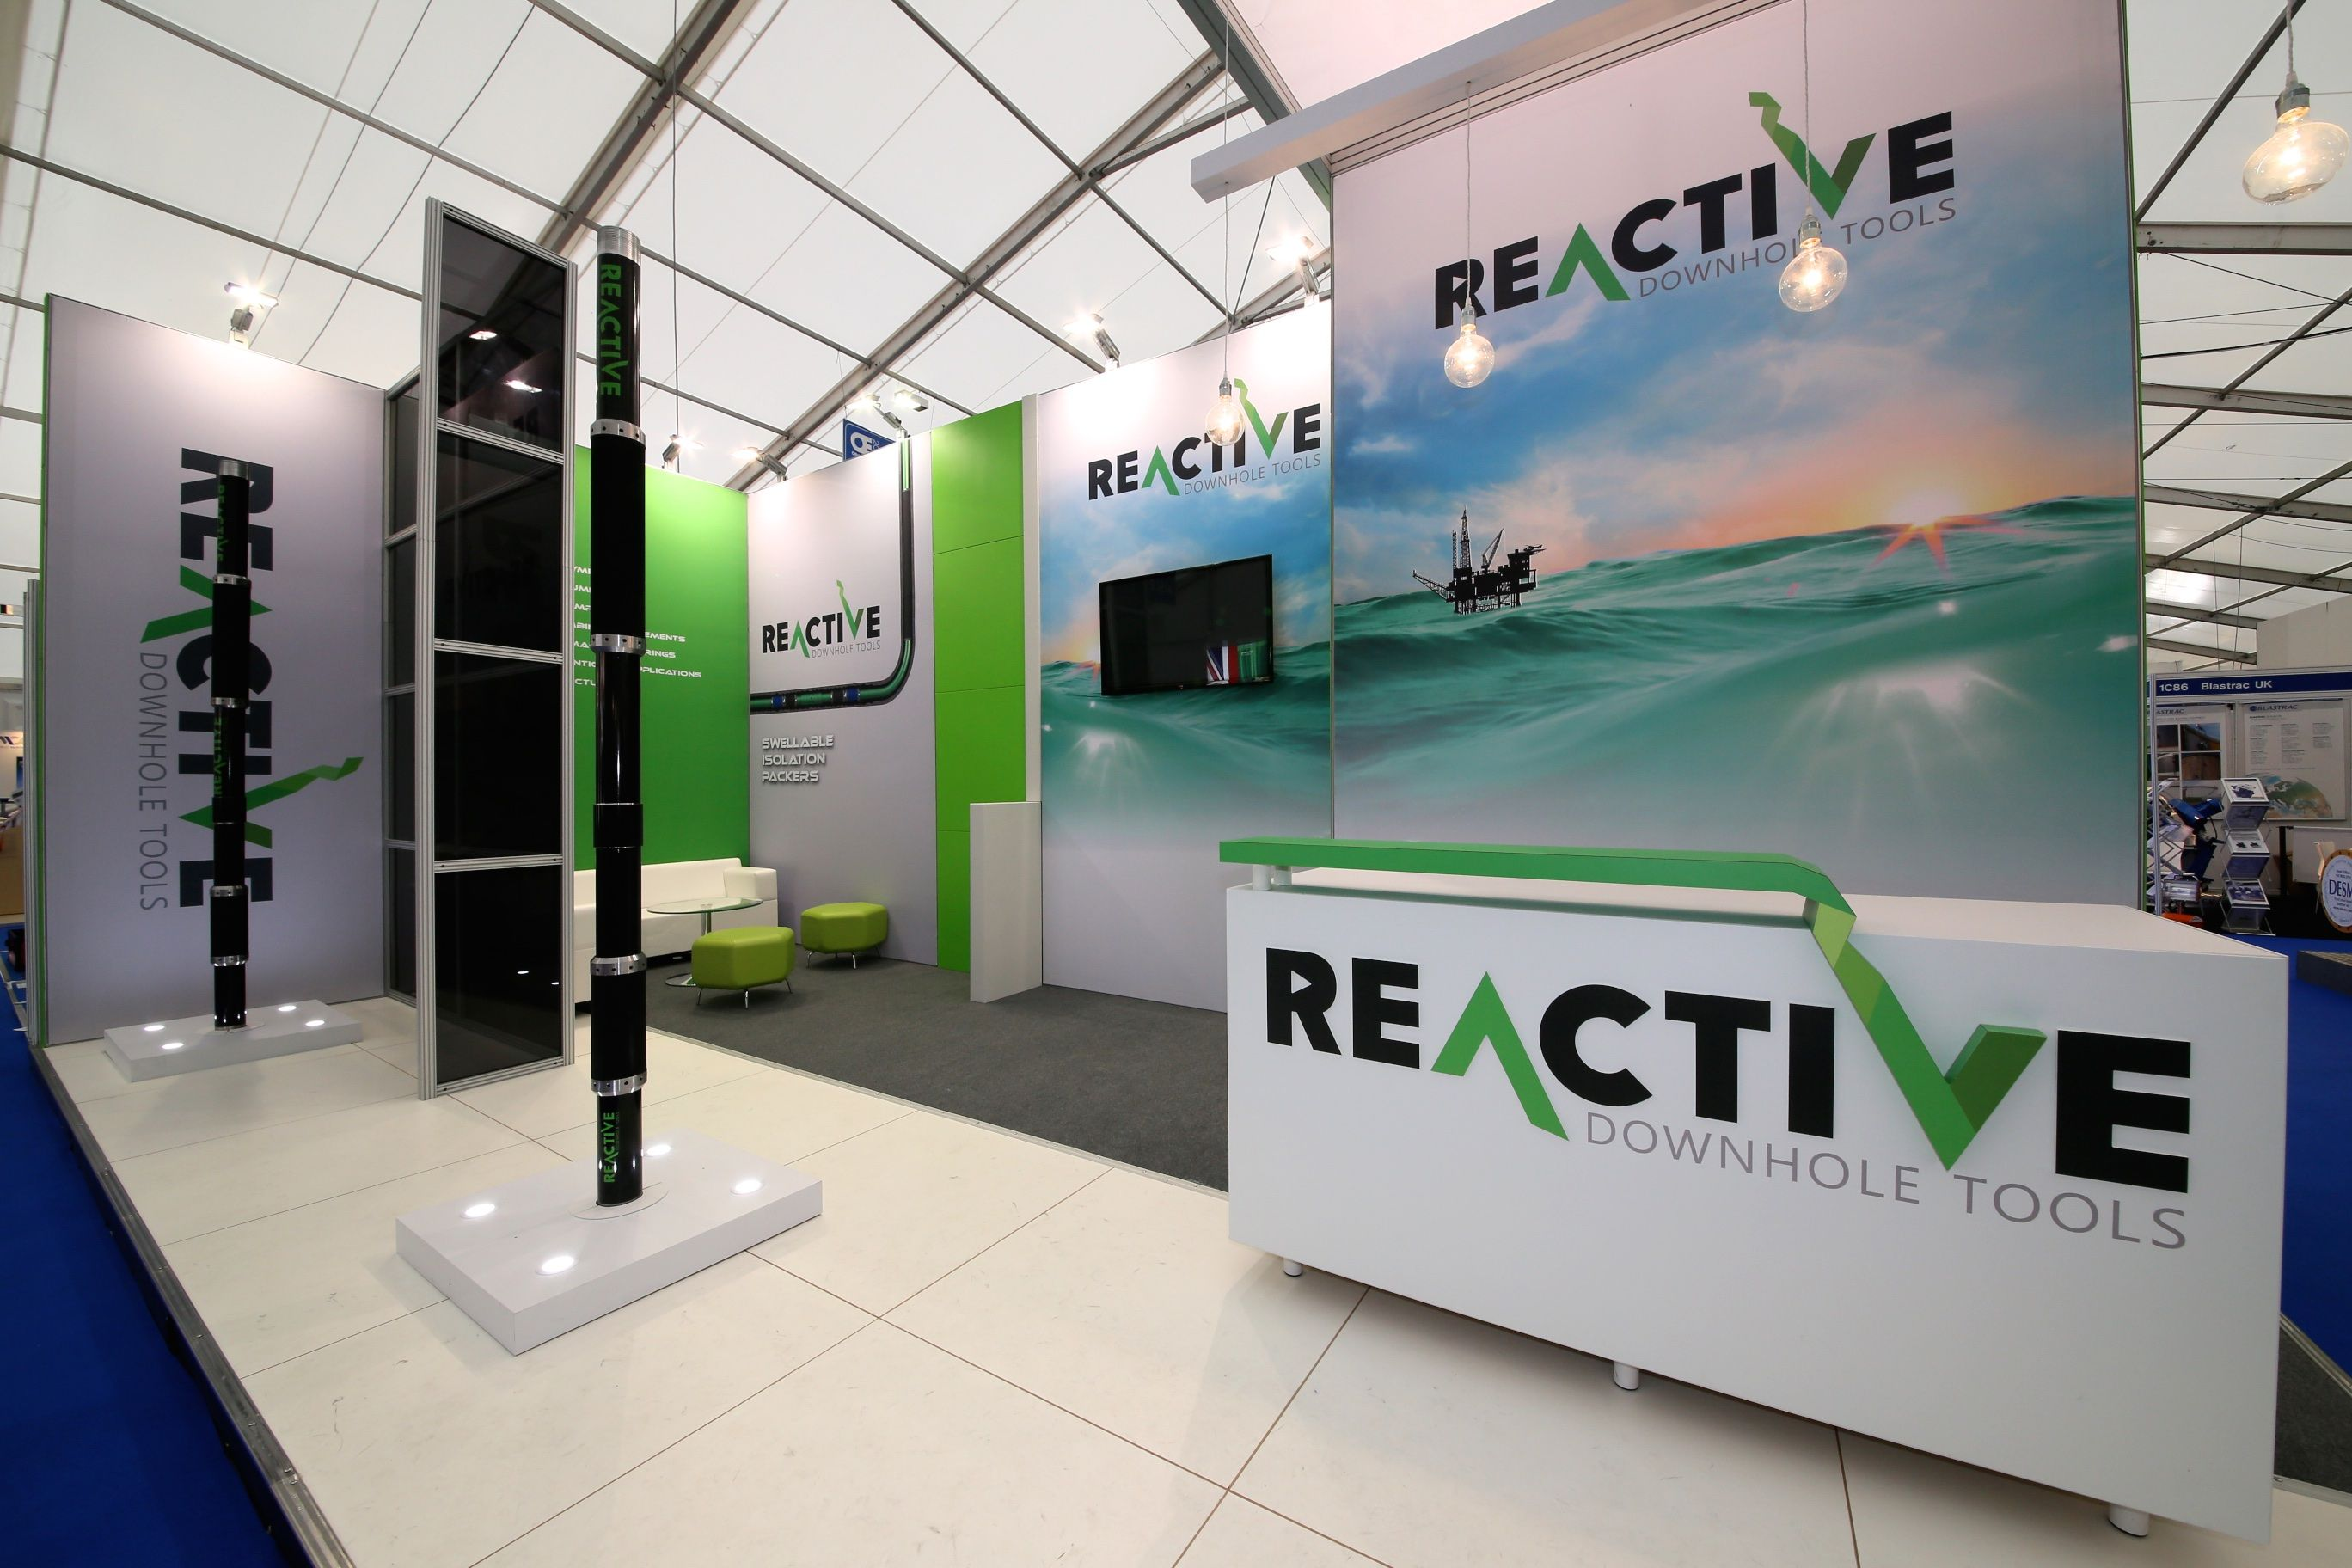 Reactive Downhole Tools Exhibition Stand at SPE Offshore Europe 2015